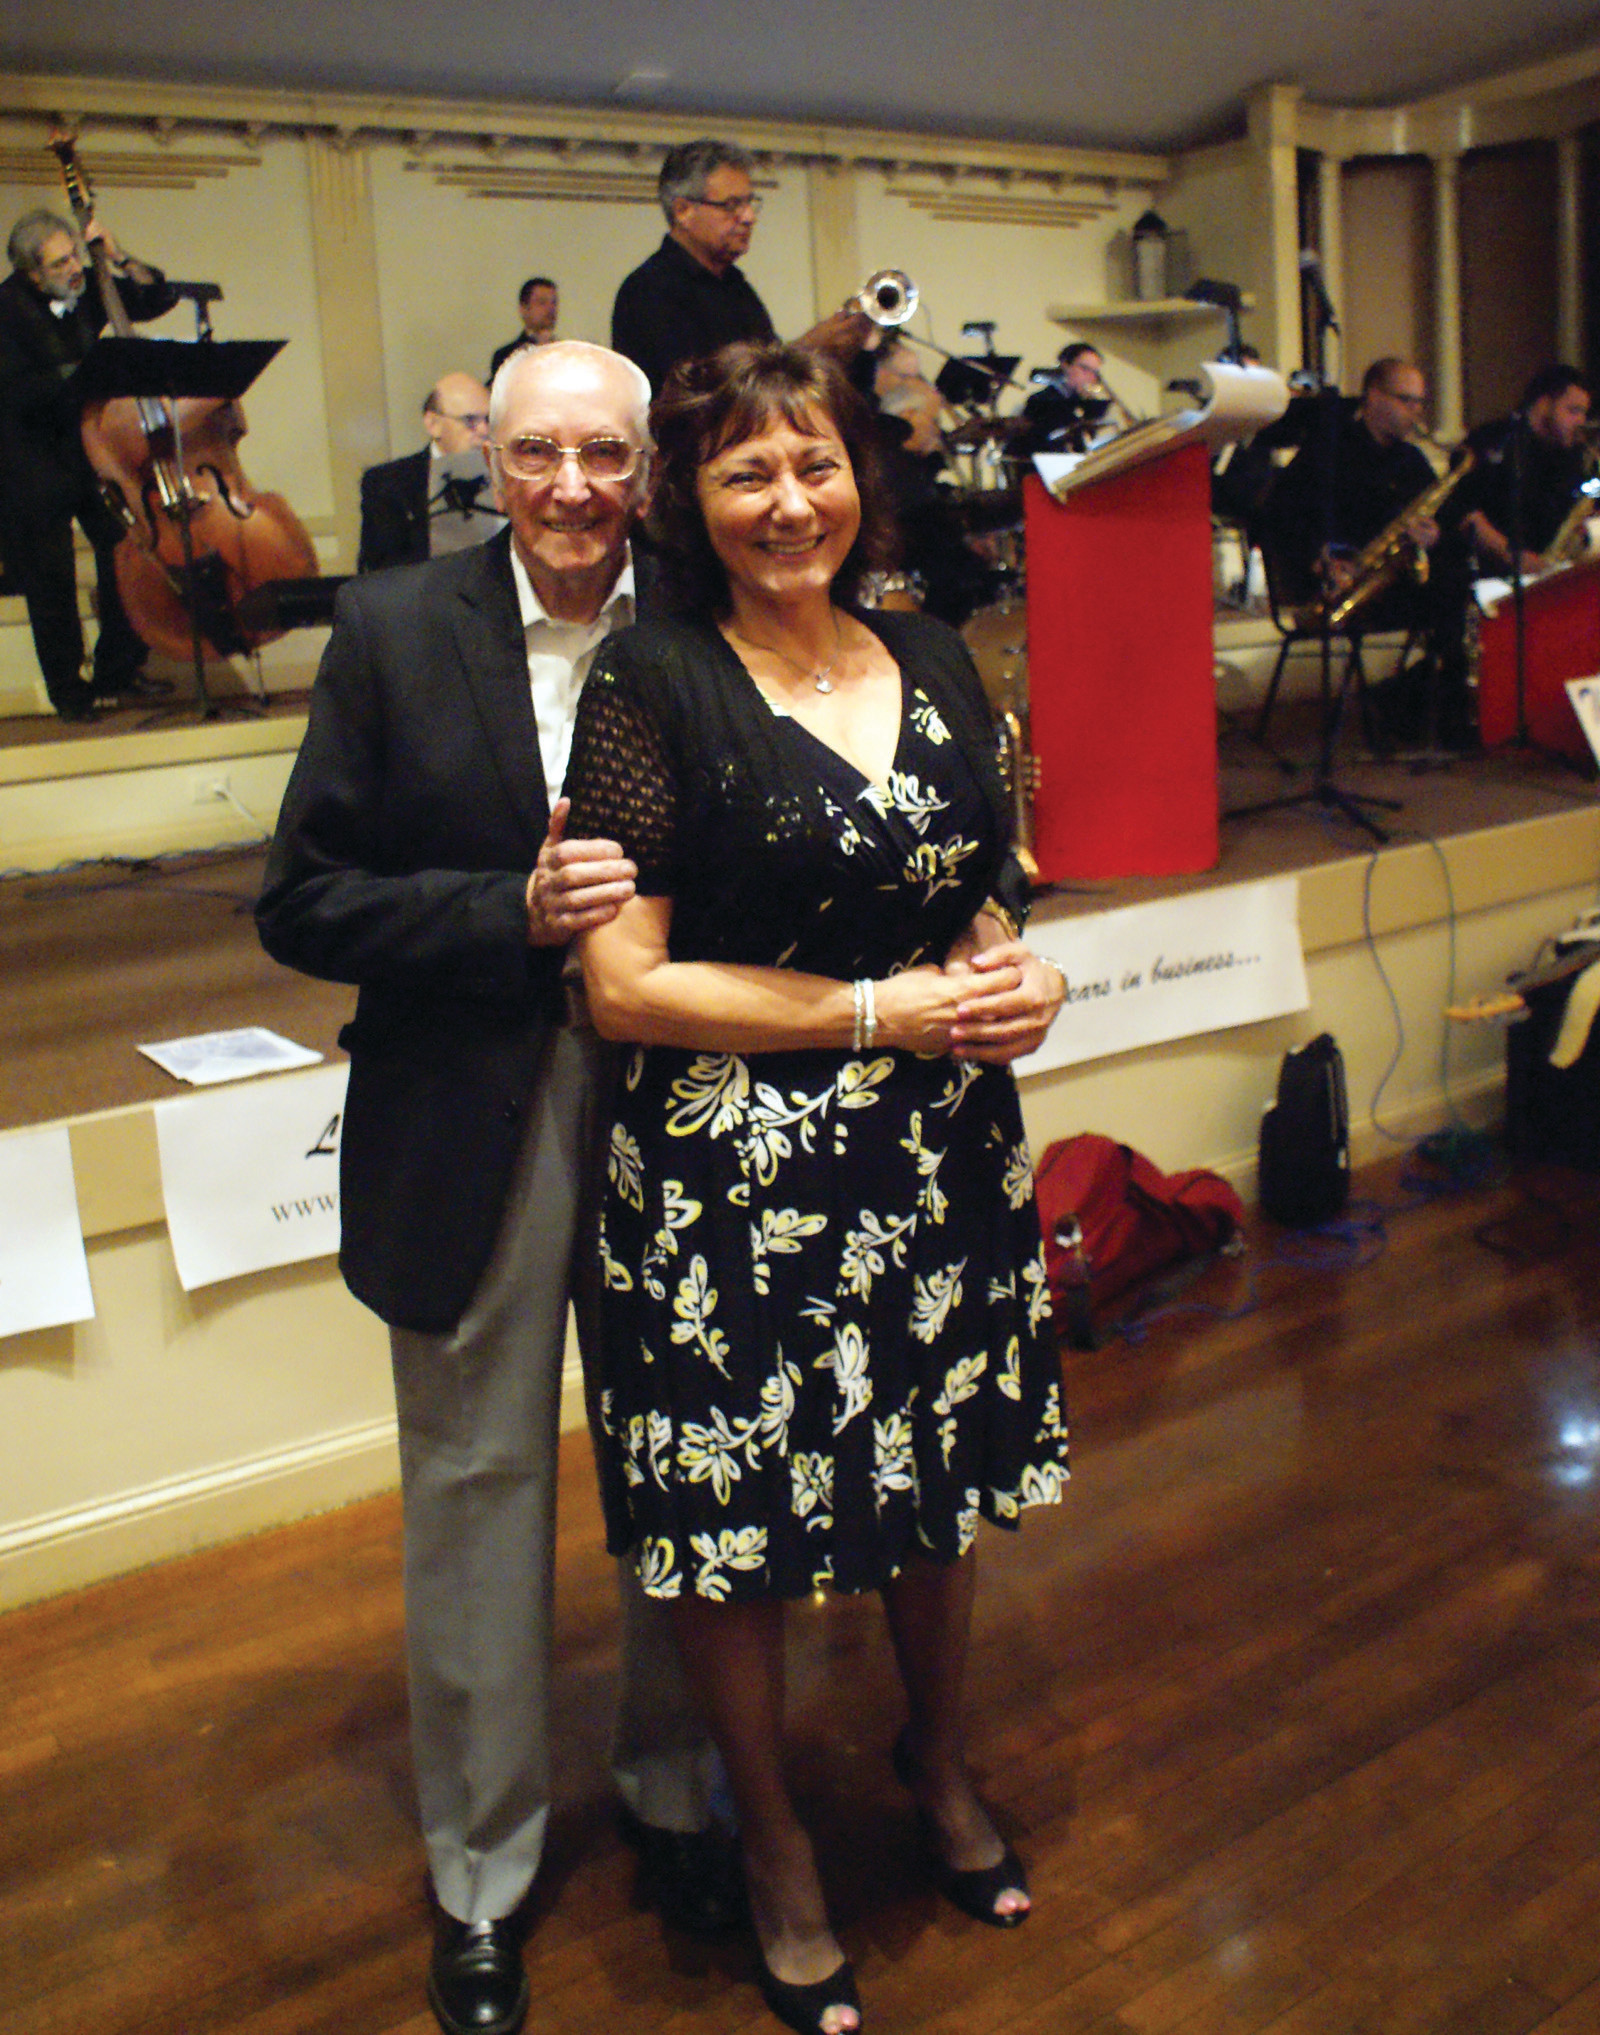 READY TO TANGO: Pictured are Ray Peterson of Cranston and Diane D'Ambra getting ready to Tango at the Spring Edition of the Cavalcade of Bands at Rhodes on the Pawtuxet.